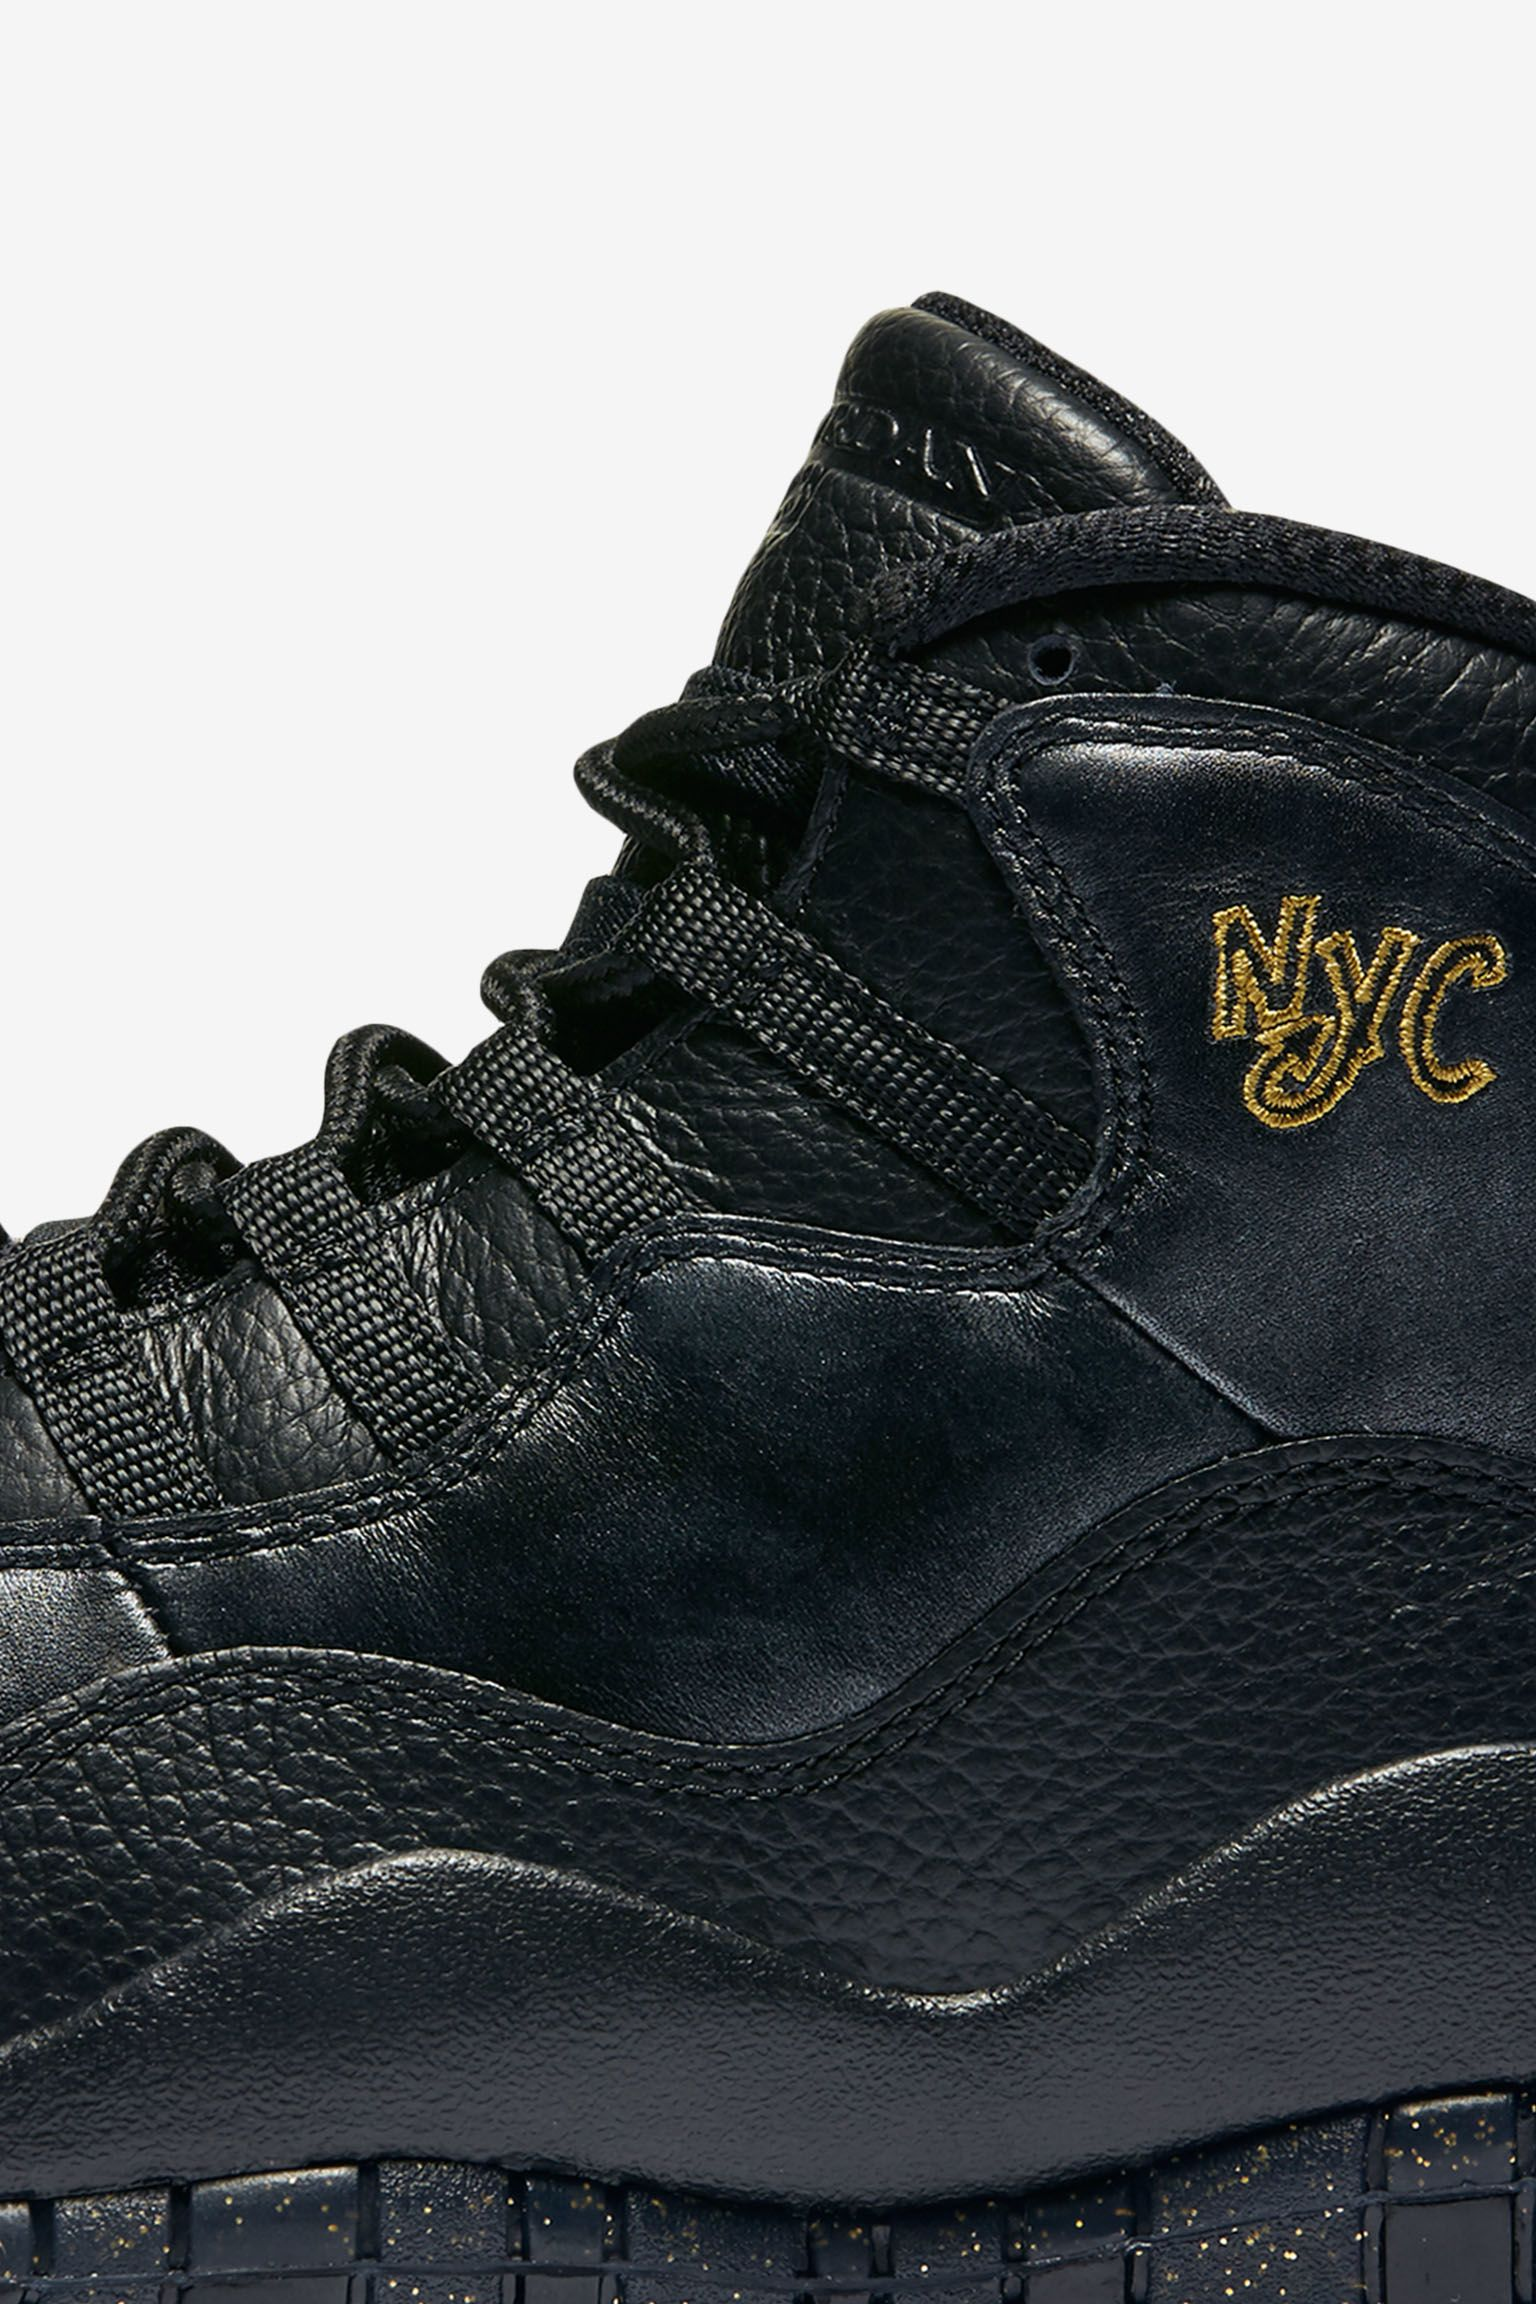 Air Jordan 10 Retro 'NYC' Release Date